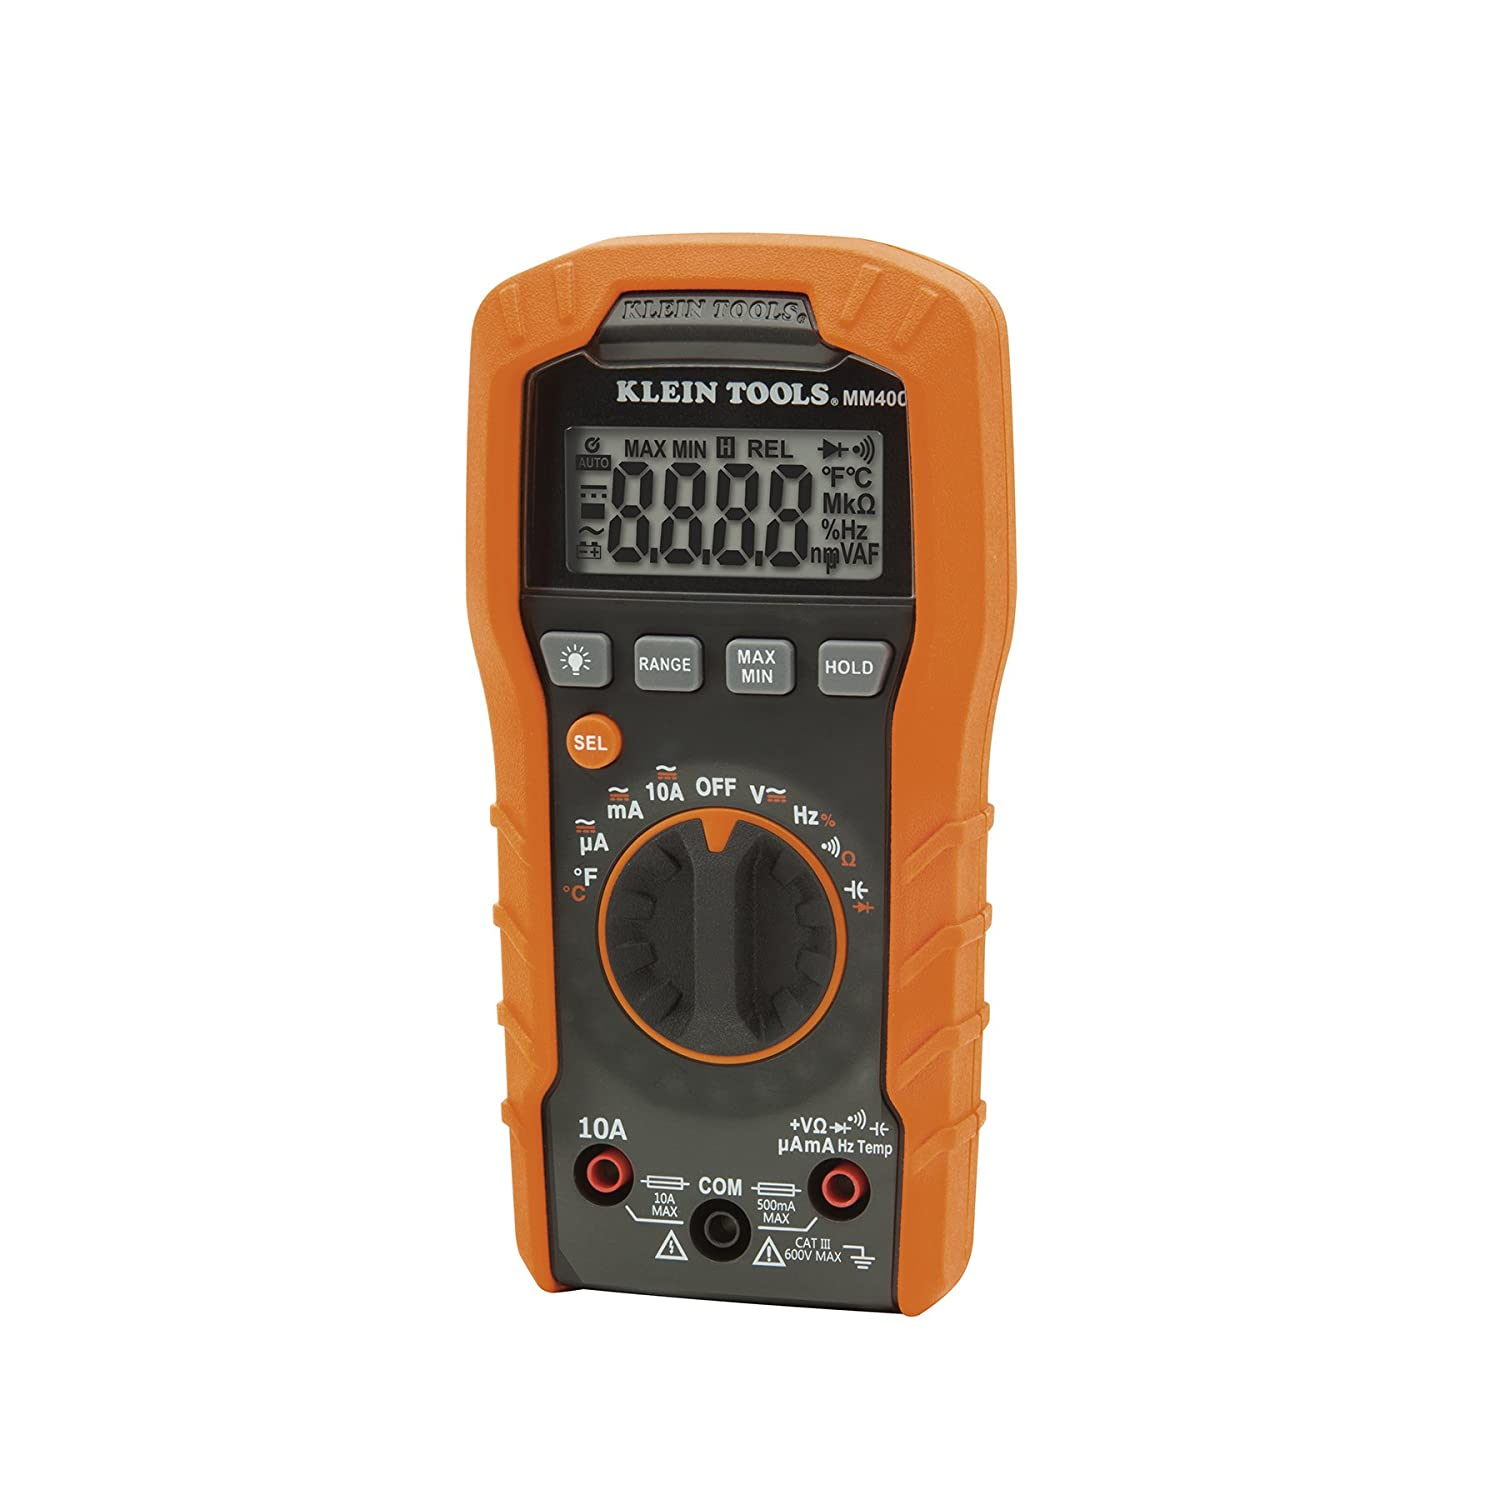 Digital Multimeter Auto Ranging 600v Klein Tools Mm400 How To Test Car Fuse Box With